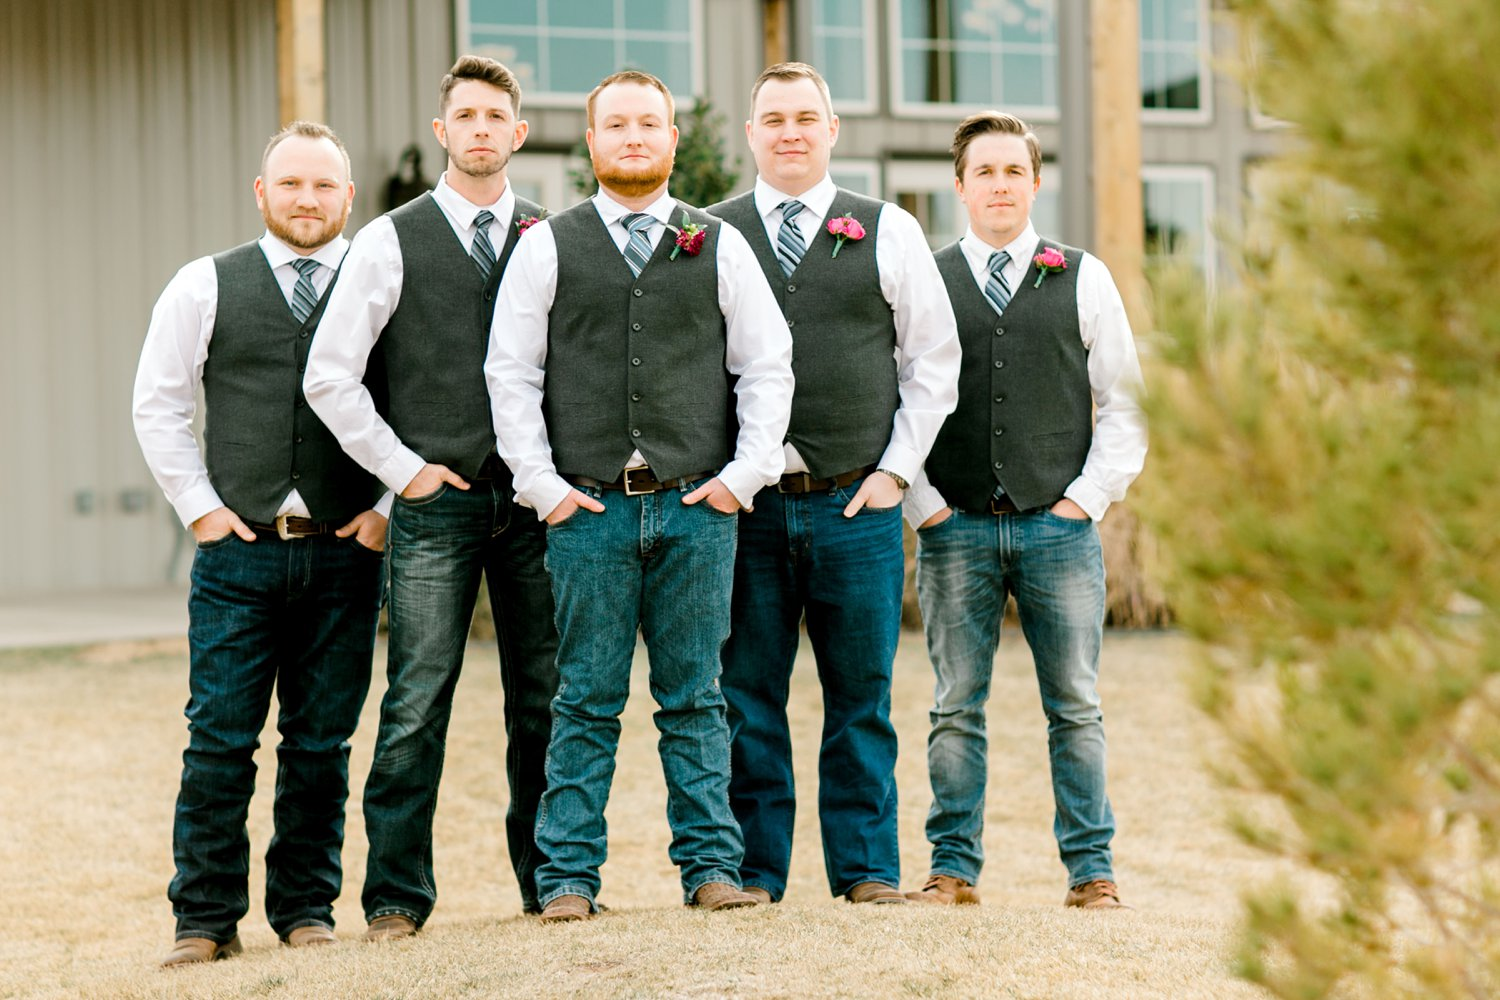 Autumn-Oaks-Events-Morgan-Andy-Lane-Wedding-Lubbock-Photography__0059.jpg